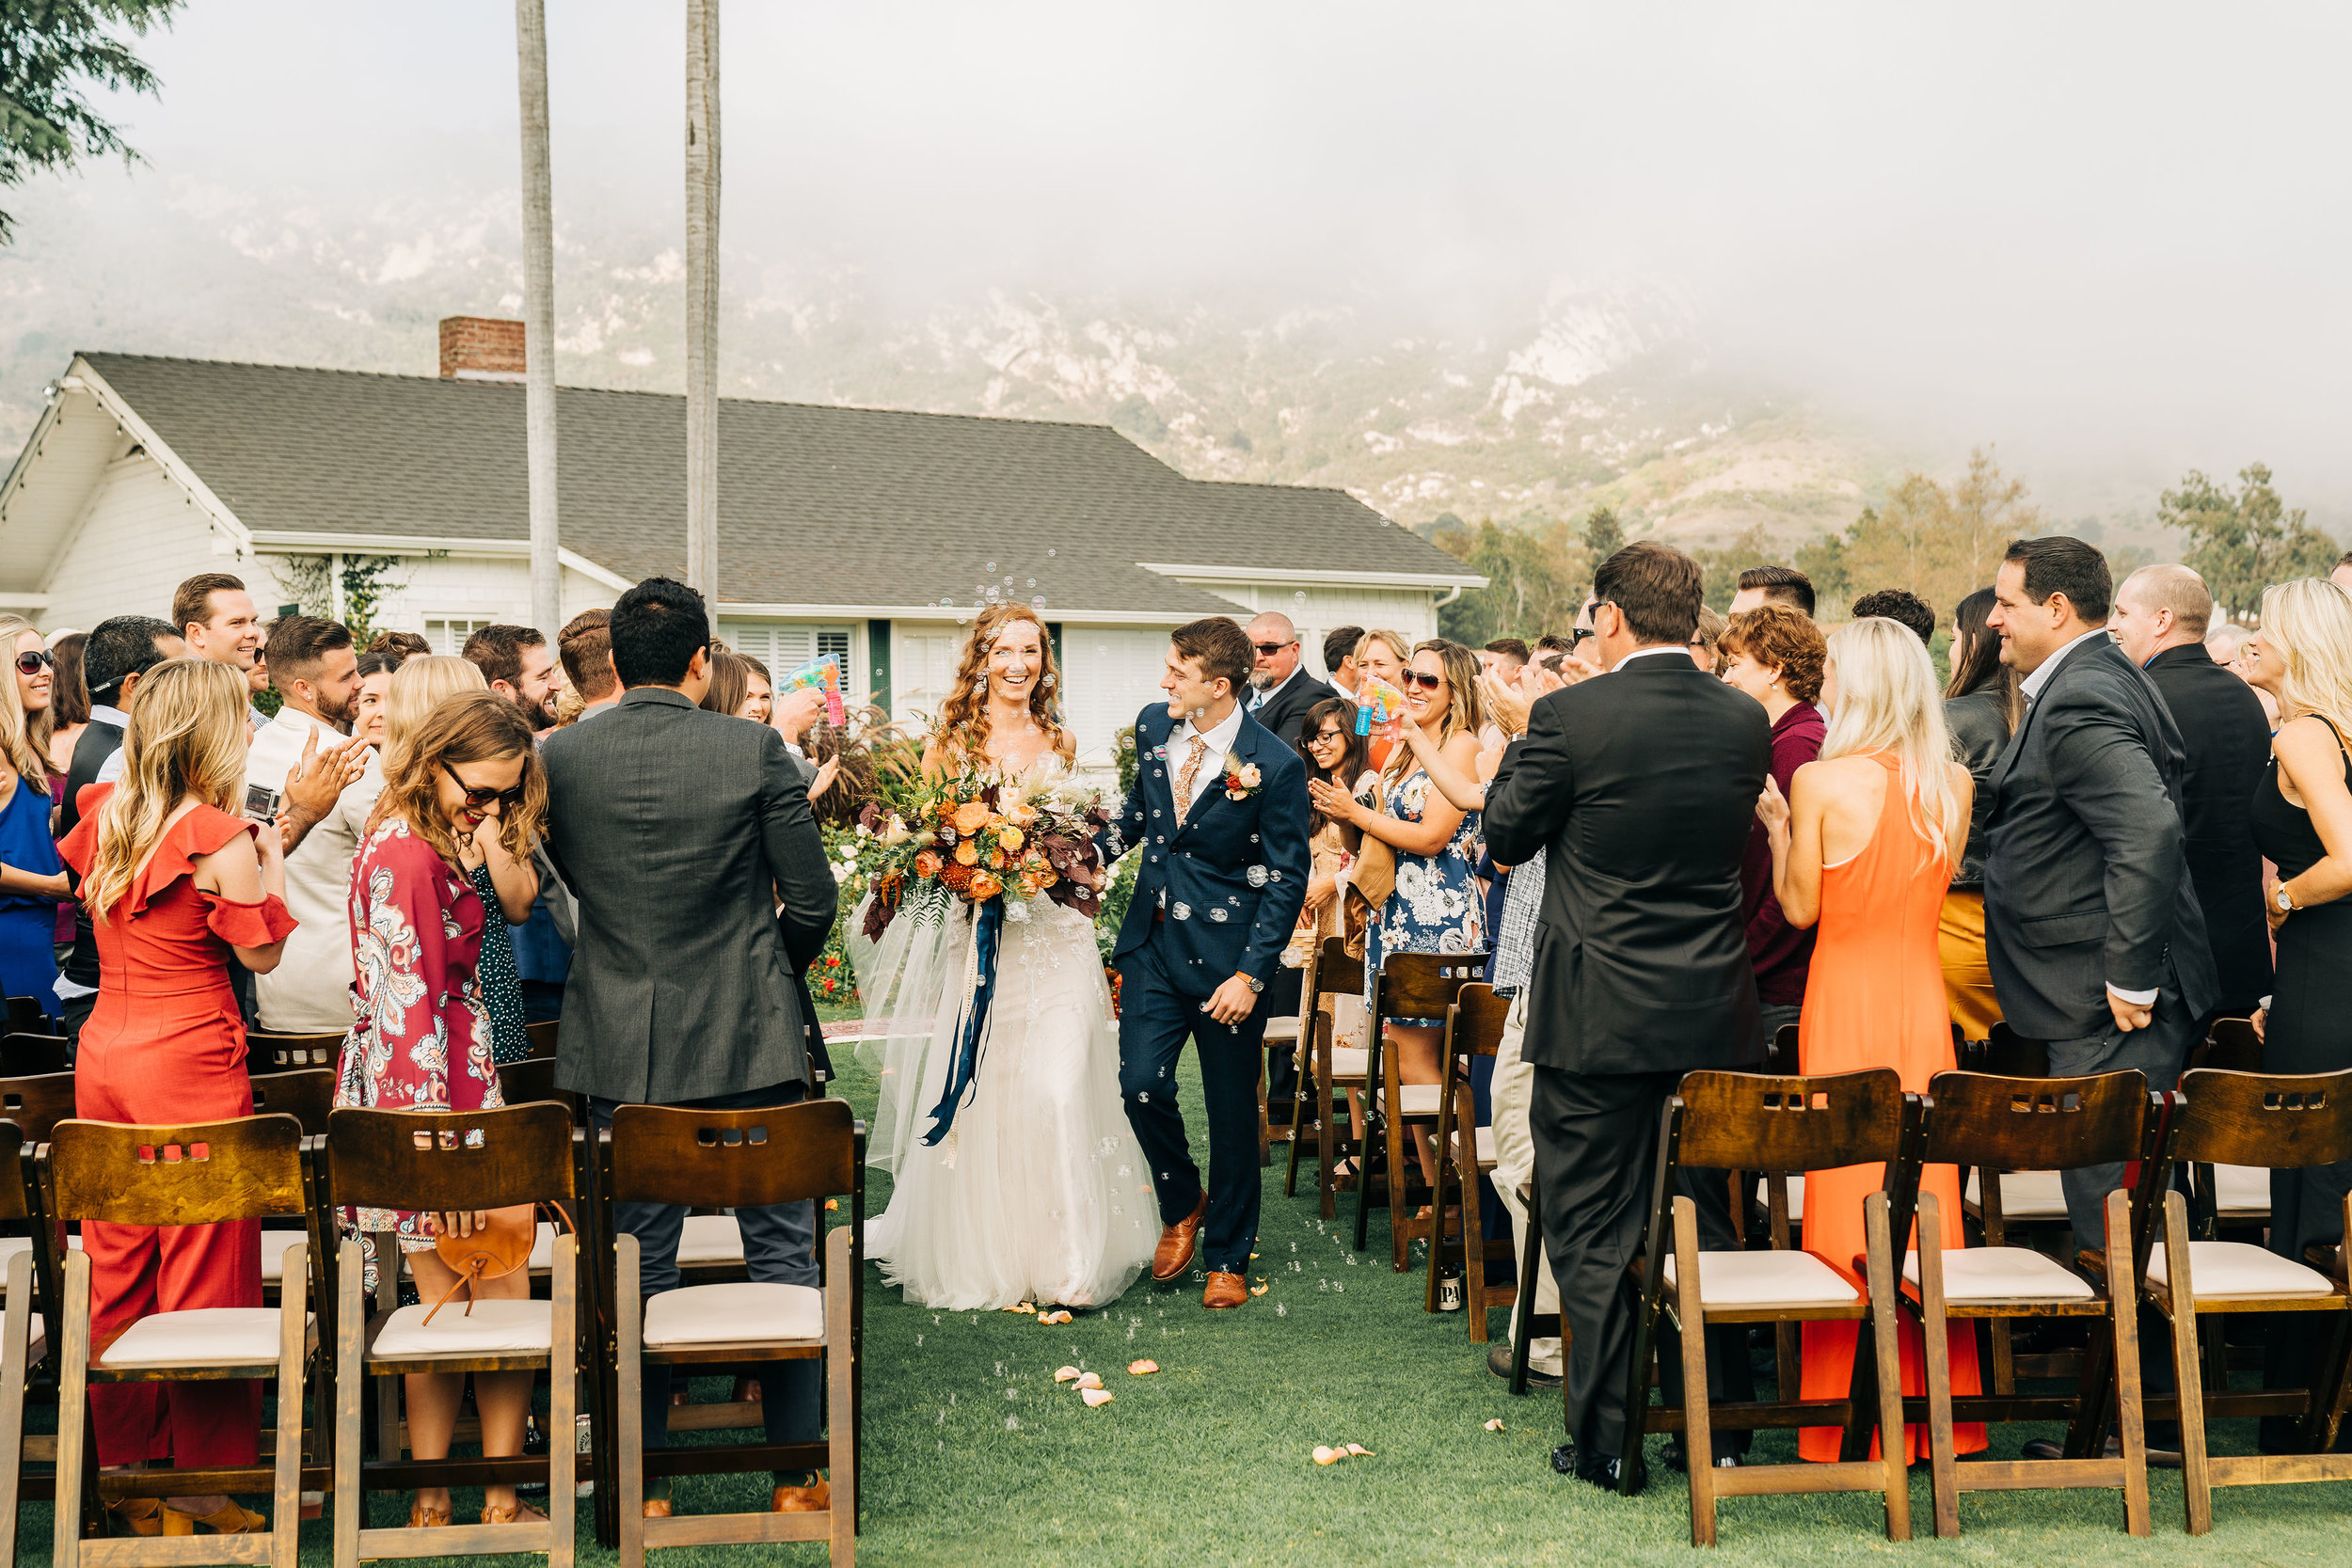 allie-shupe-tyler-wiggins-wedding-santa-barbara 104.jpg